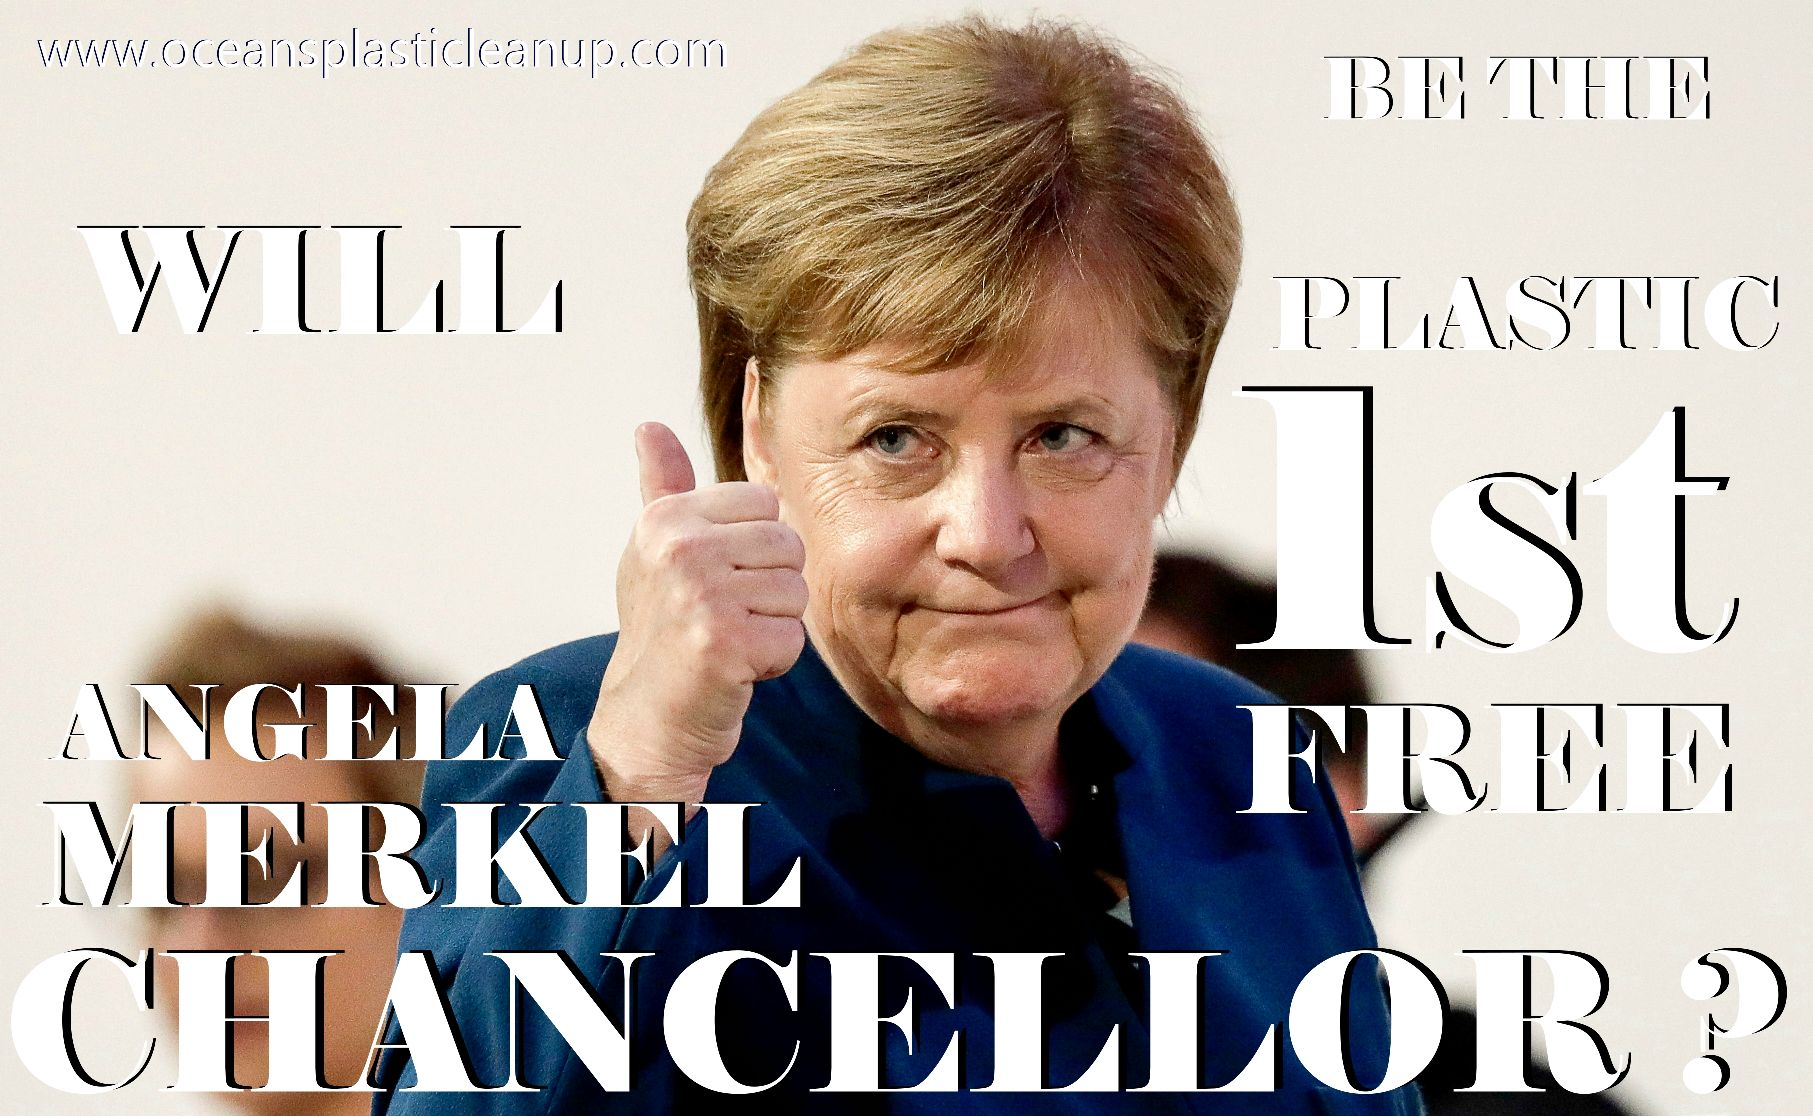 Could Angela Merkel be the first plastic free Chancellor of Germany ?